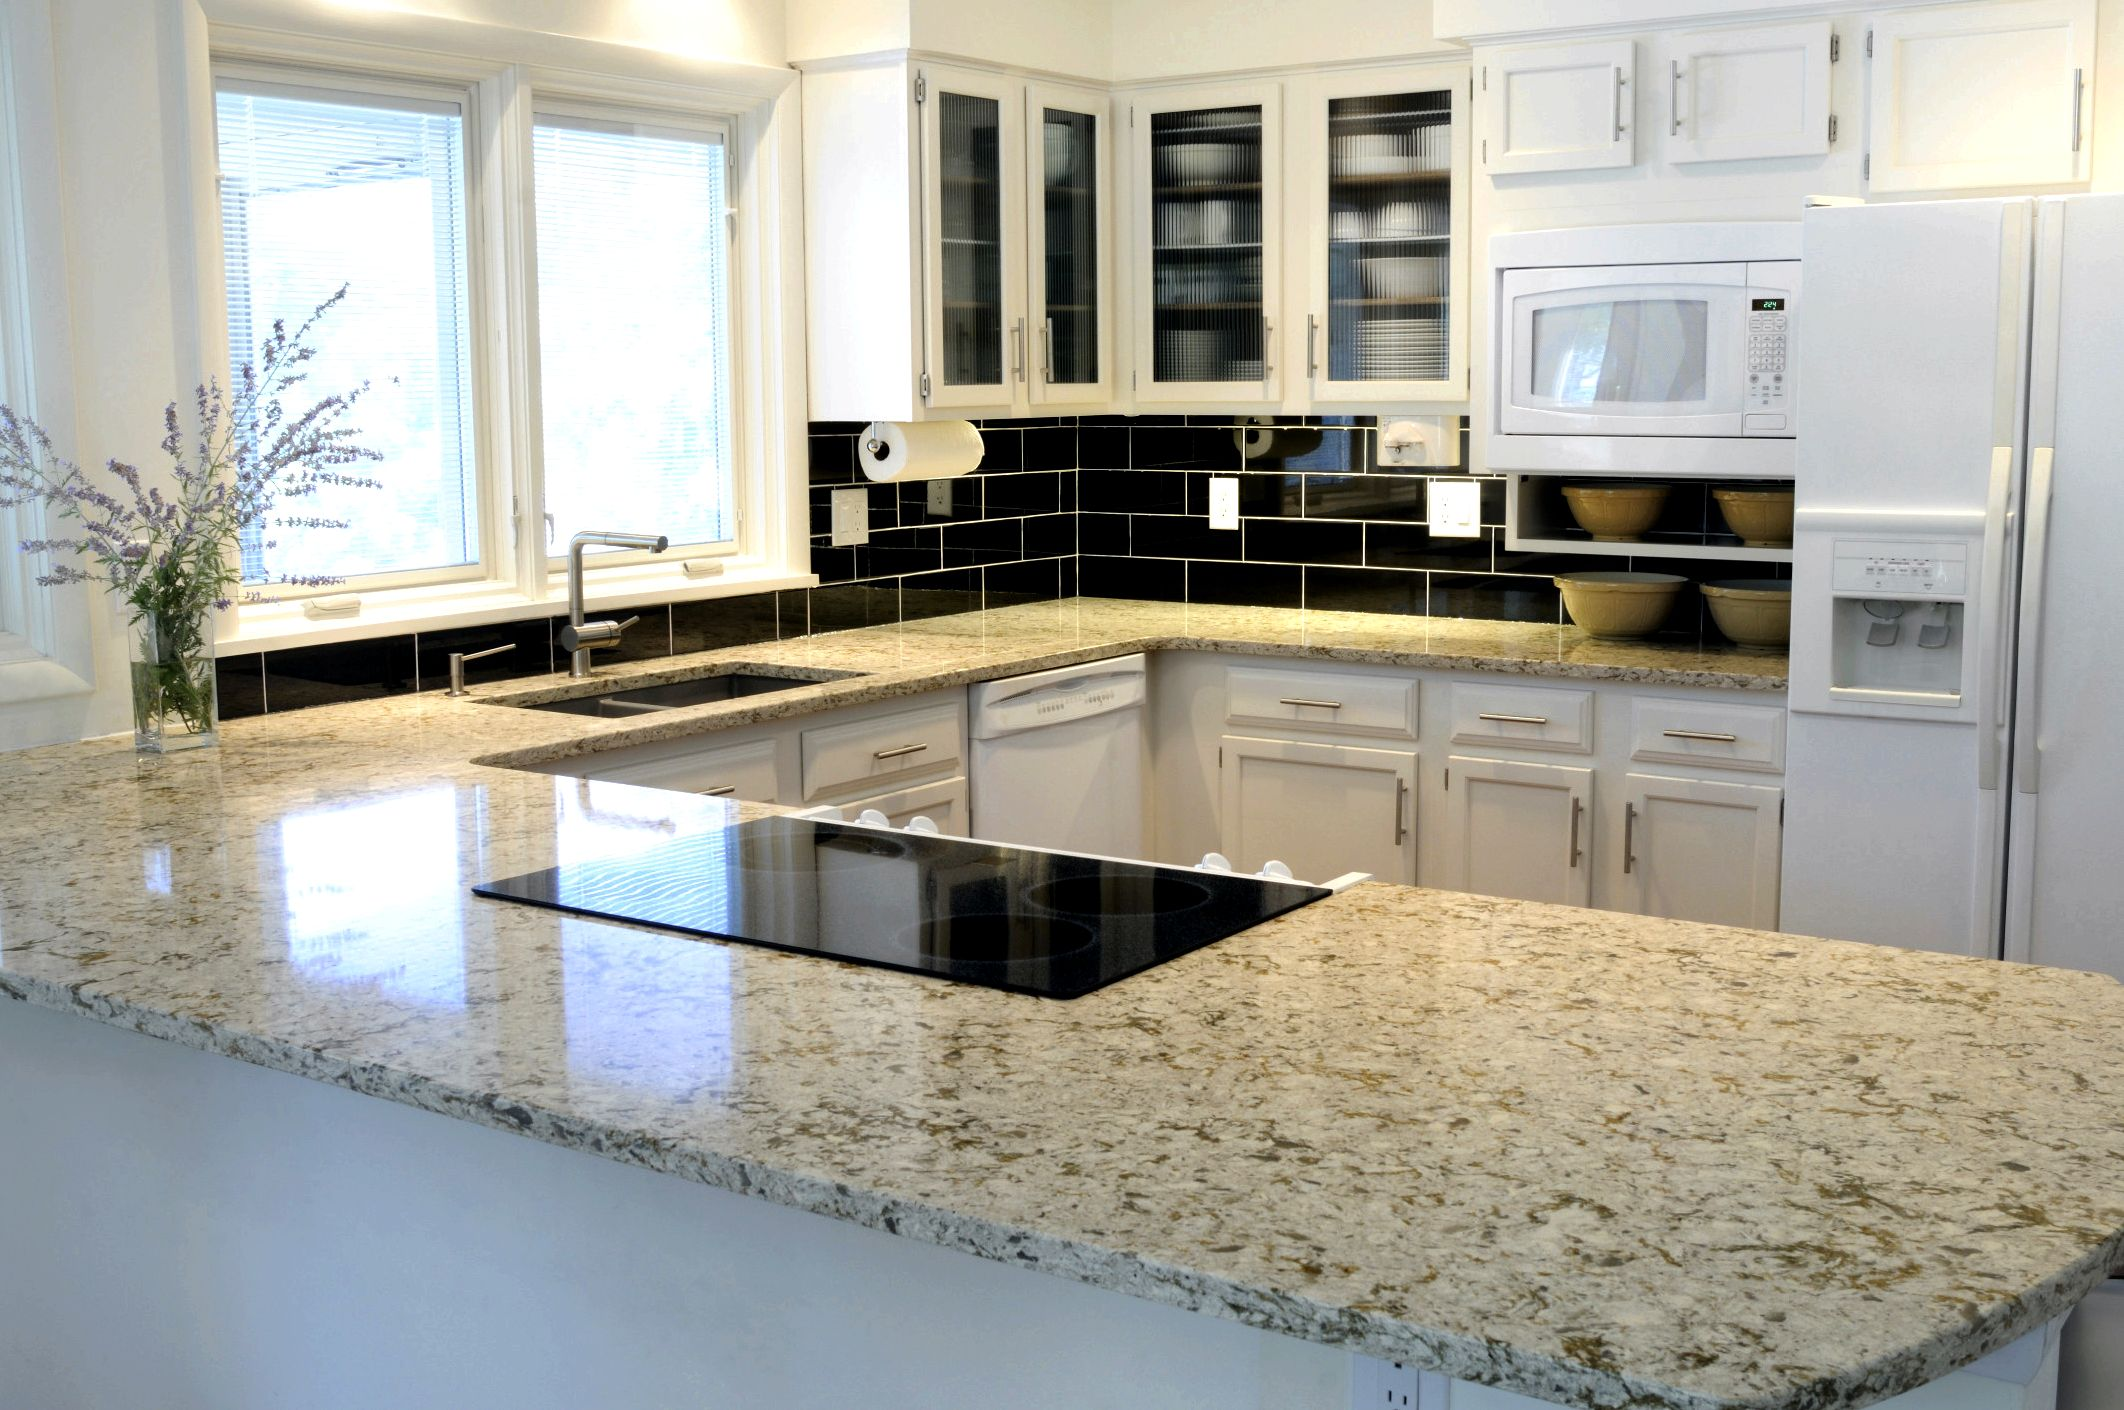 Granite versus. marble versus. quarta movement: which countertop material is the greatest? simply because